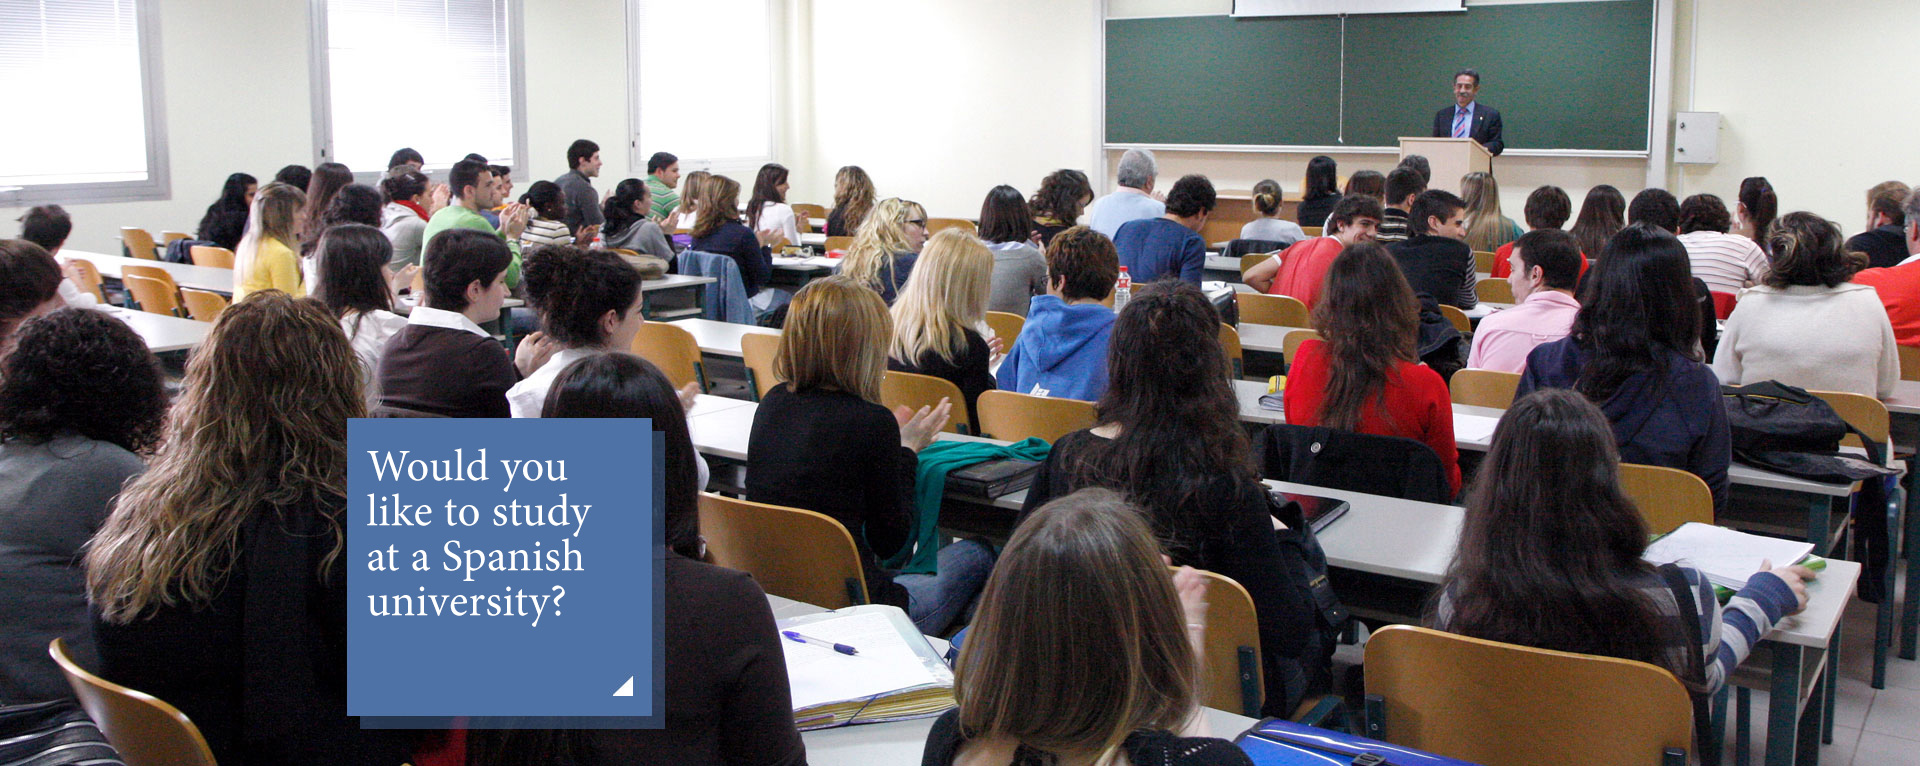 Would you like to study at a Spanish university?